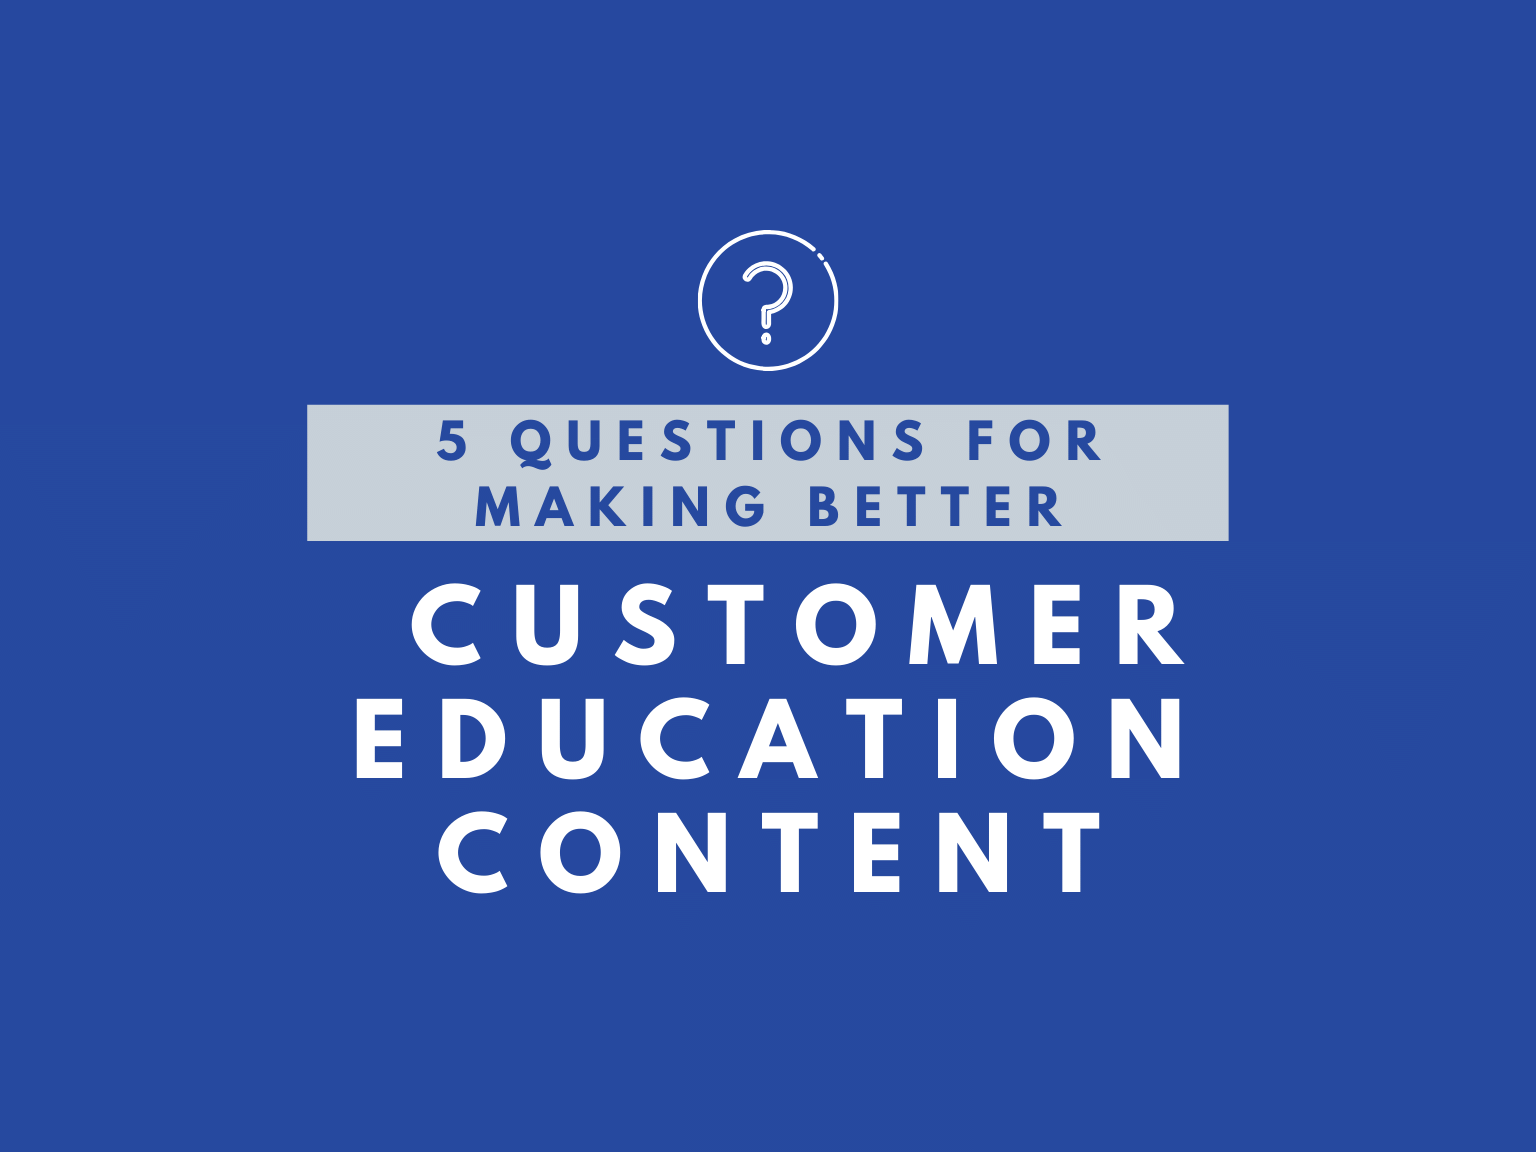 5 Questions for Making Better Customer Education Content